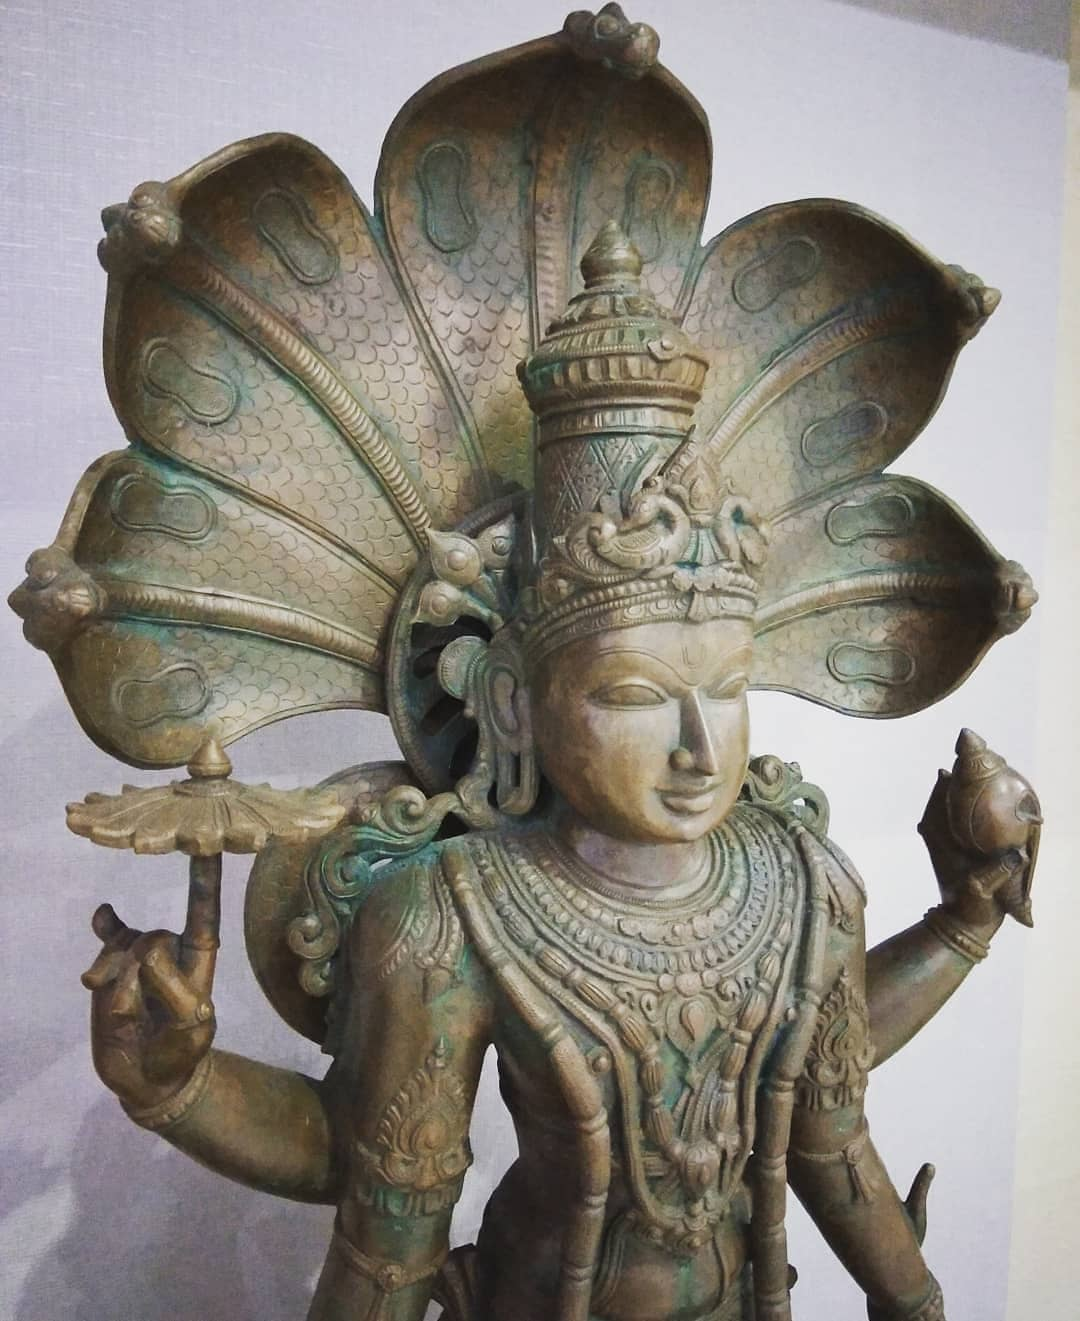 Ojas Rawal,  antique, statue, mumbai, bronze, vishnu, hindu, mythology, myth, lord, god, art, sculpture, snake, naga, krishna, hinduism, religion, myth, history, culture, india, incredibleindia, indiagram, indianart, idol, divine, artwork, antiques, handicraft, sculptureart